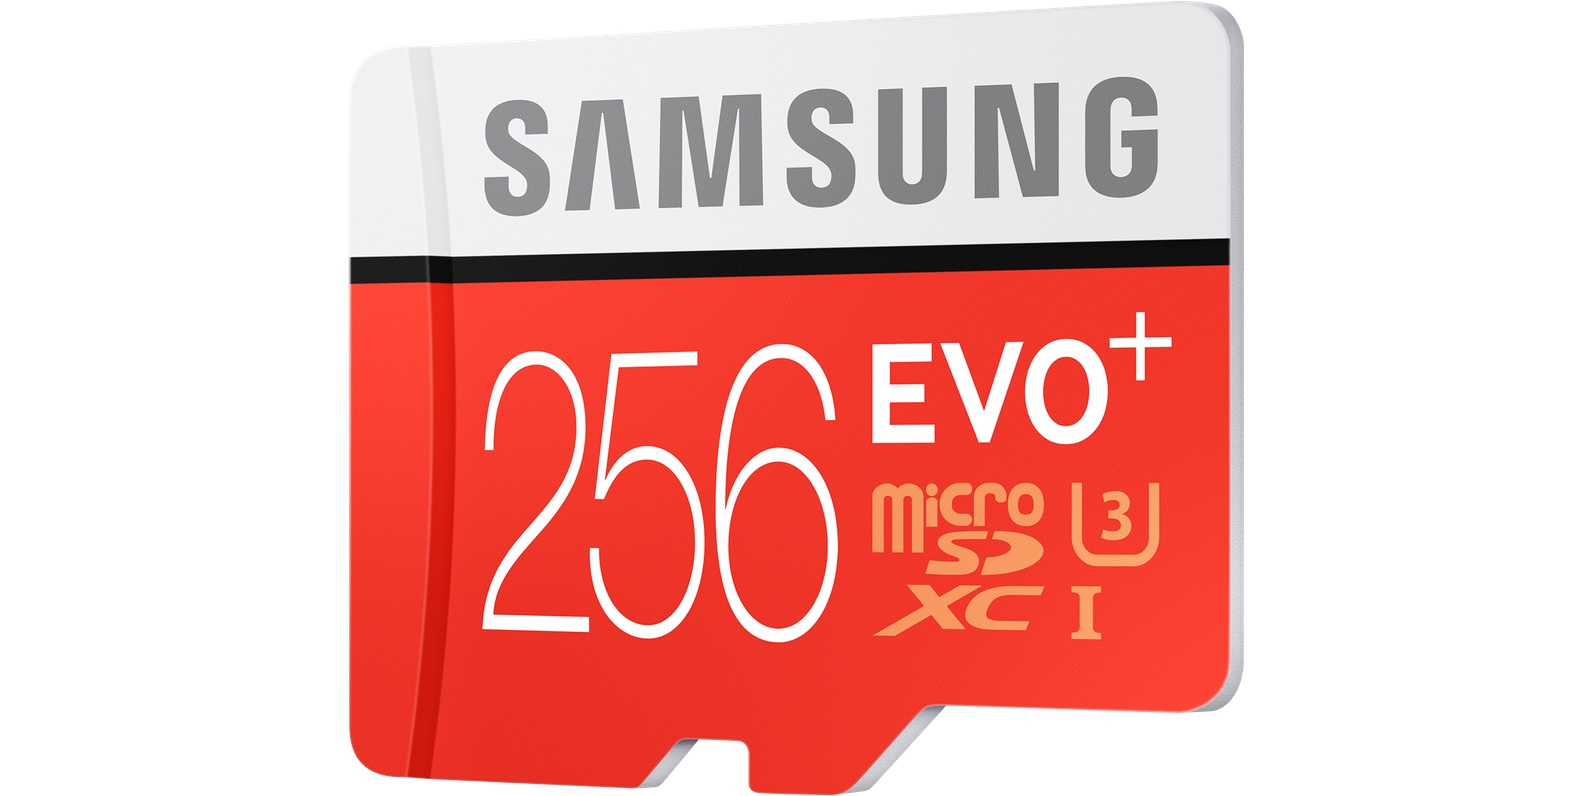 Samsung's 256GB MicroSD card holds 12 hours of 4K video